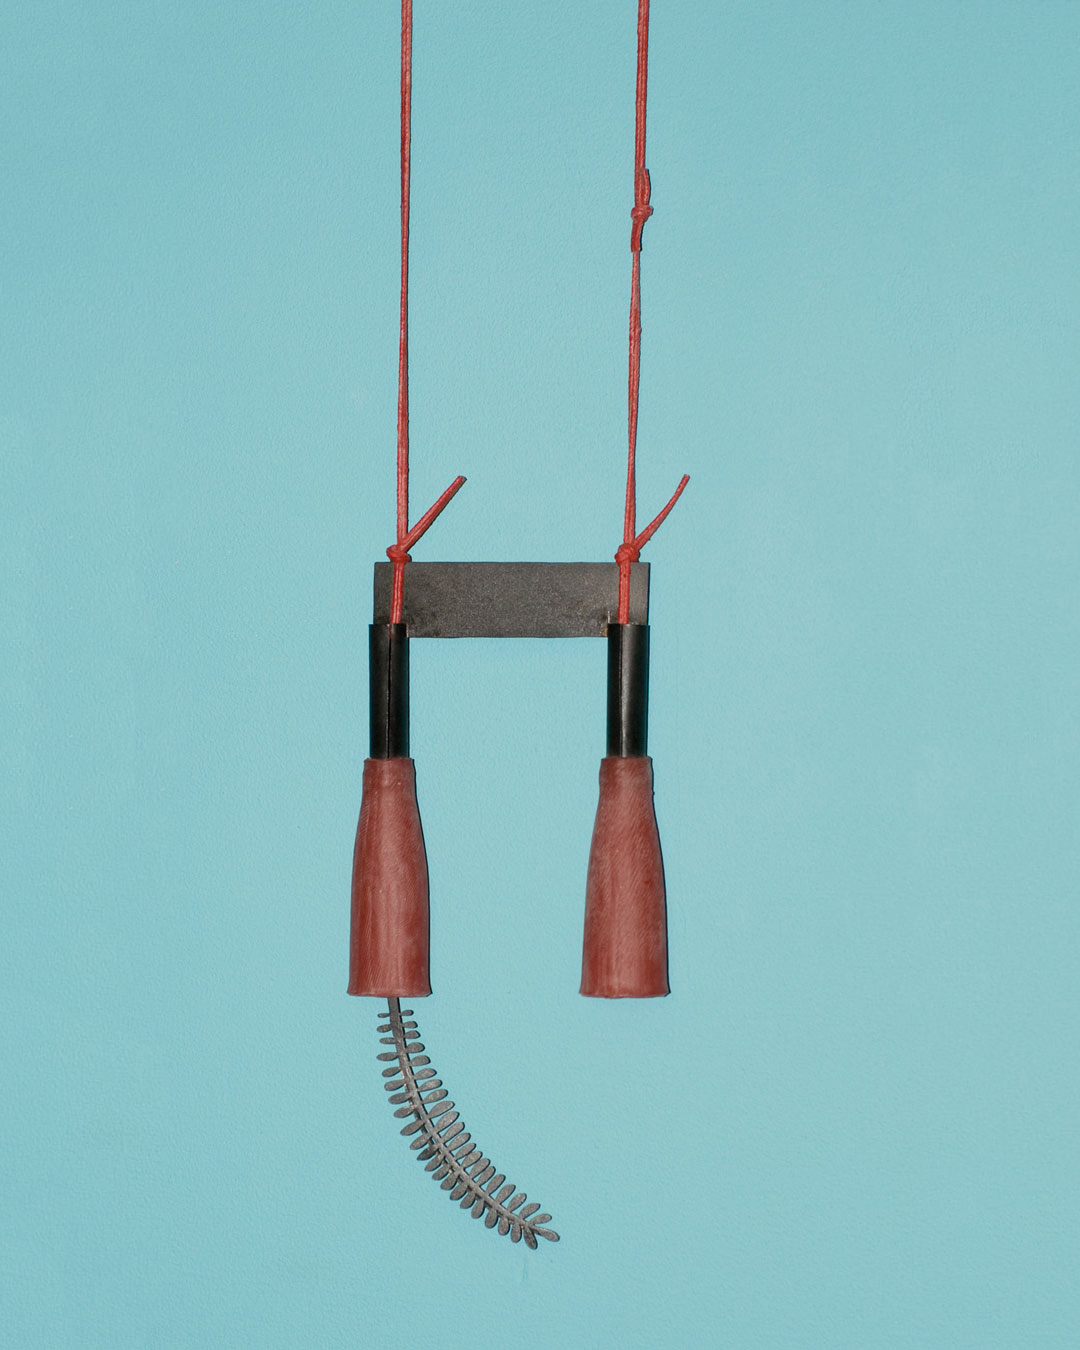 Dongchun Lee, Inhale Exhale, 2009, necklace; iron, latex, 88 x 212 x 23 mm, €1040